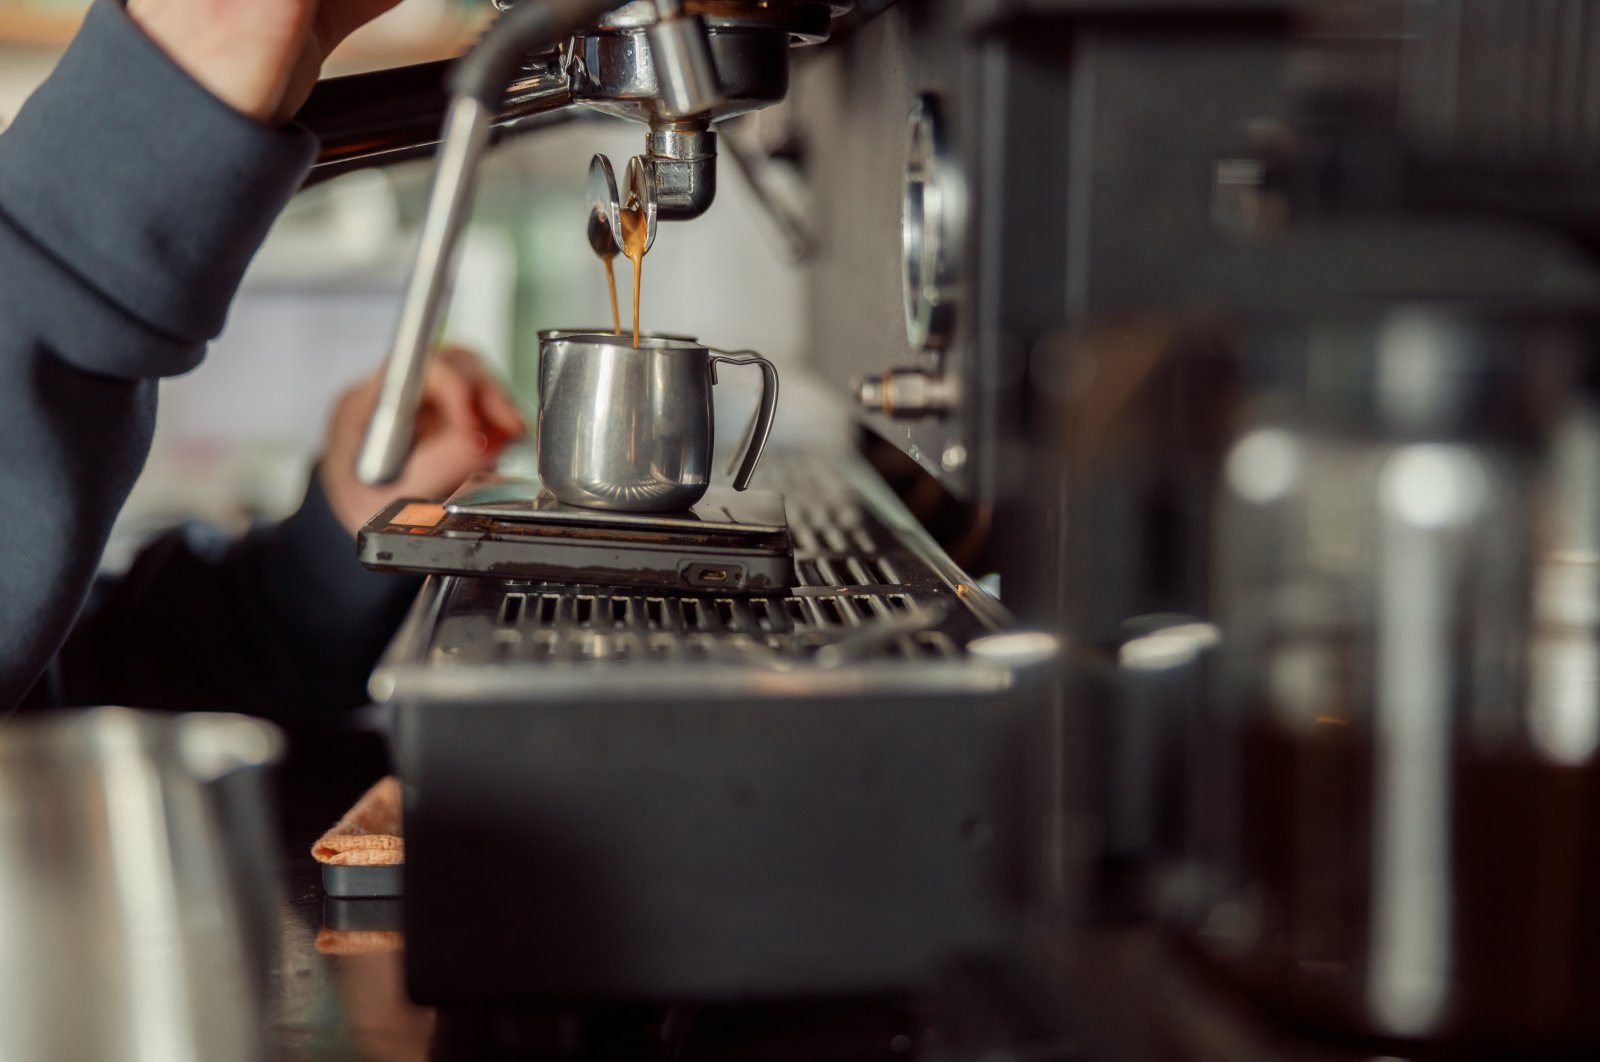 Coffee in moderation cuts risk of deadly liver disease, study shows. (Shutterstock Photo)